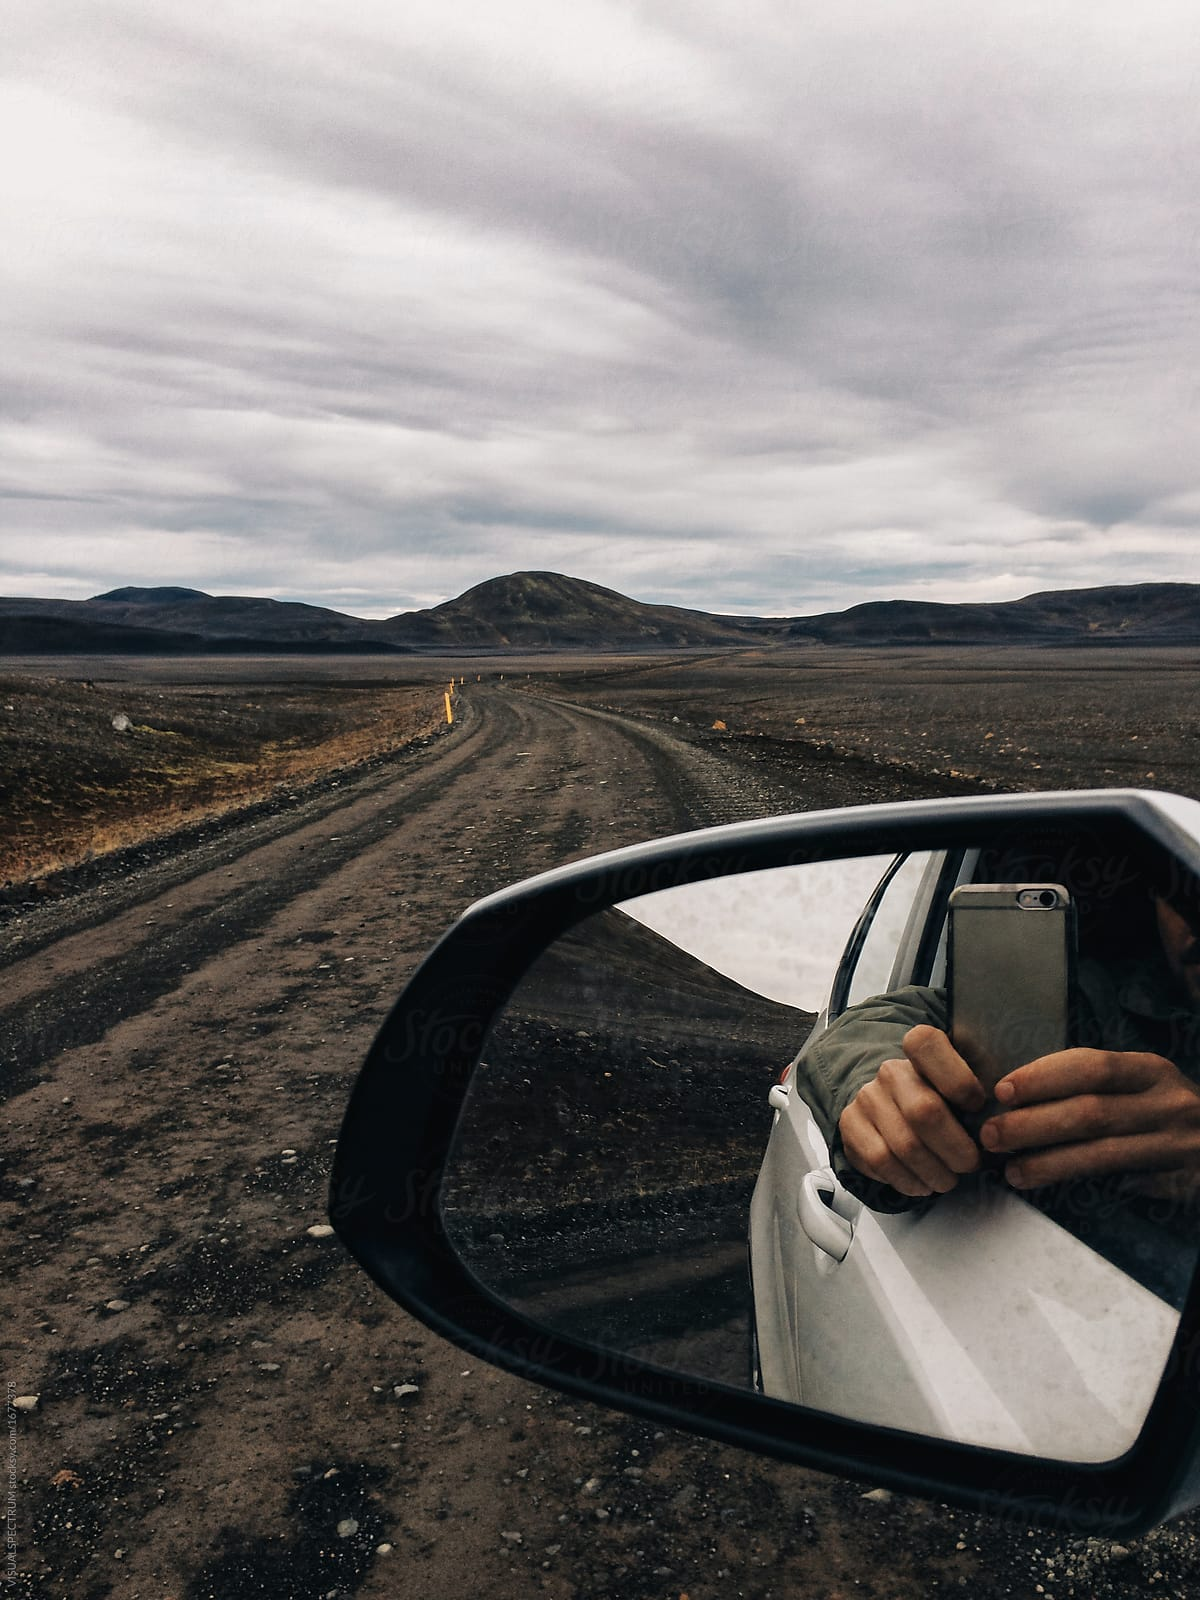 Cellphone Travel Photography On Iceland Road Trip By Visualspectrum Travel Photography Stocksy United